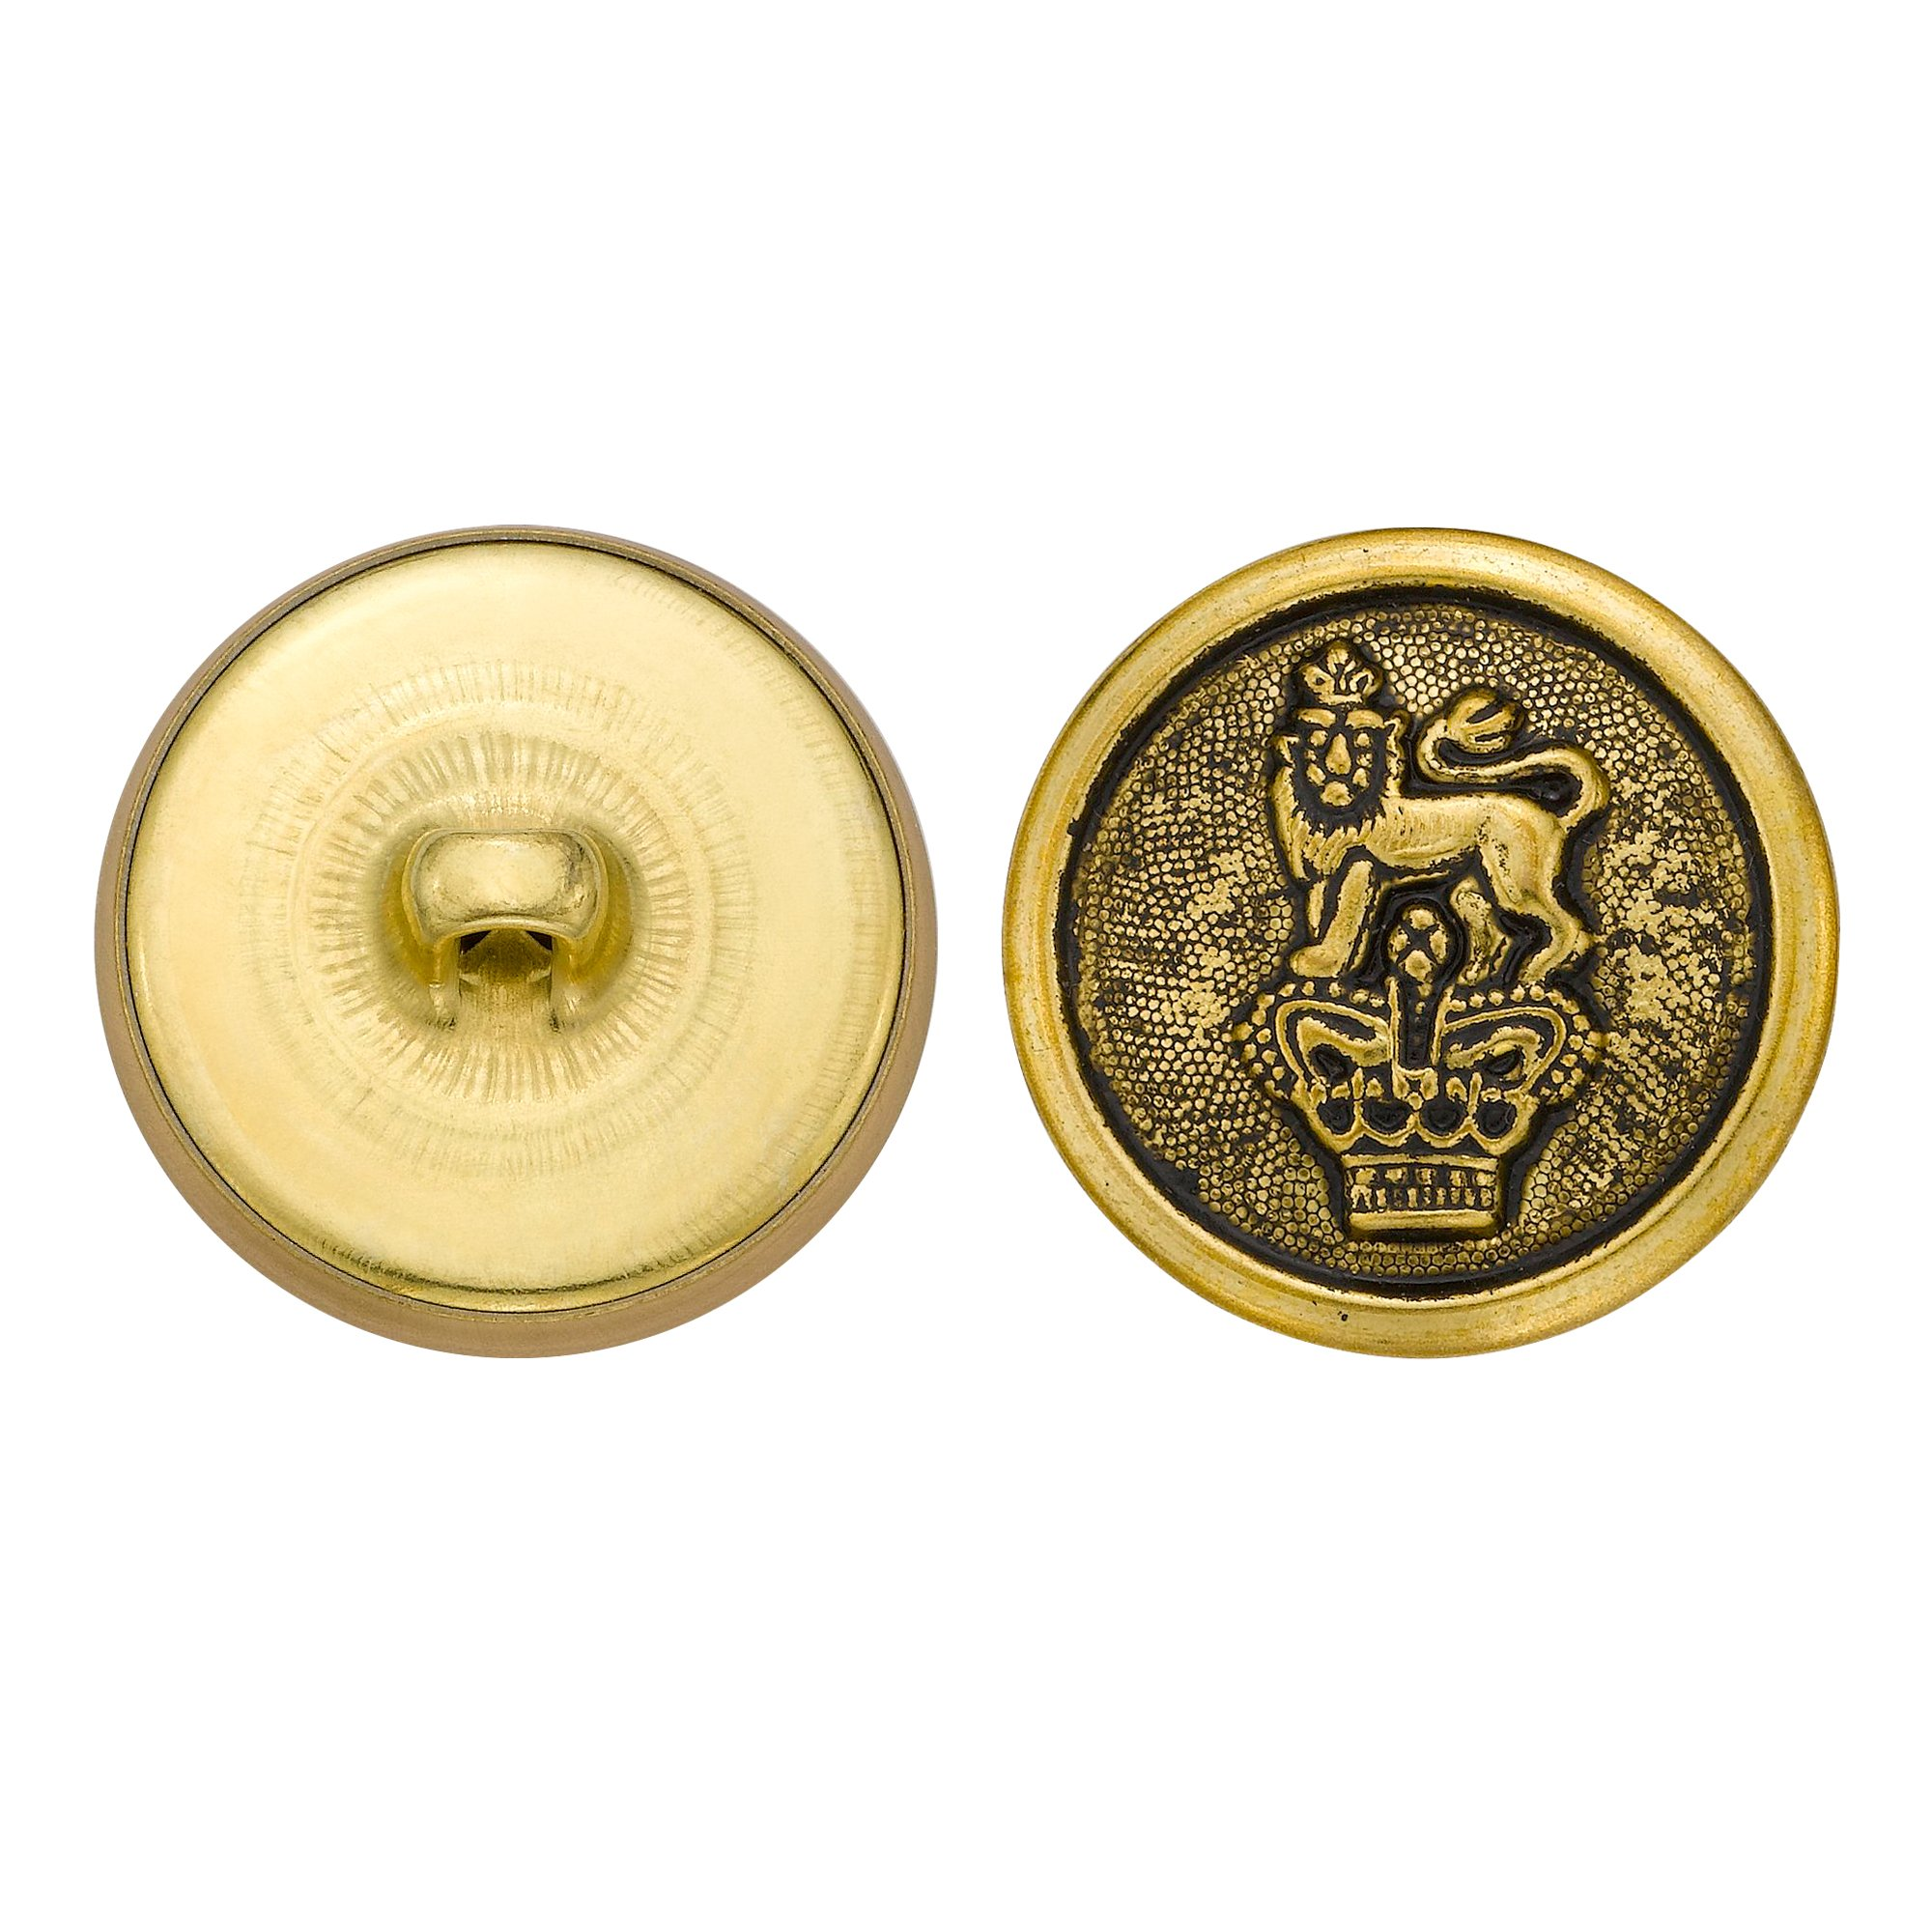 C&C Metal Products 5277 Crowned Lion Metal Button, Size 36 Ligne, Antique Gold, 36-Pack by C&C Metal Products Corp